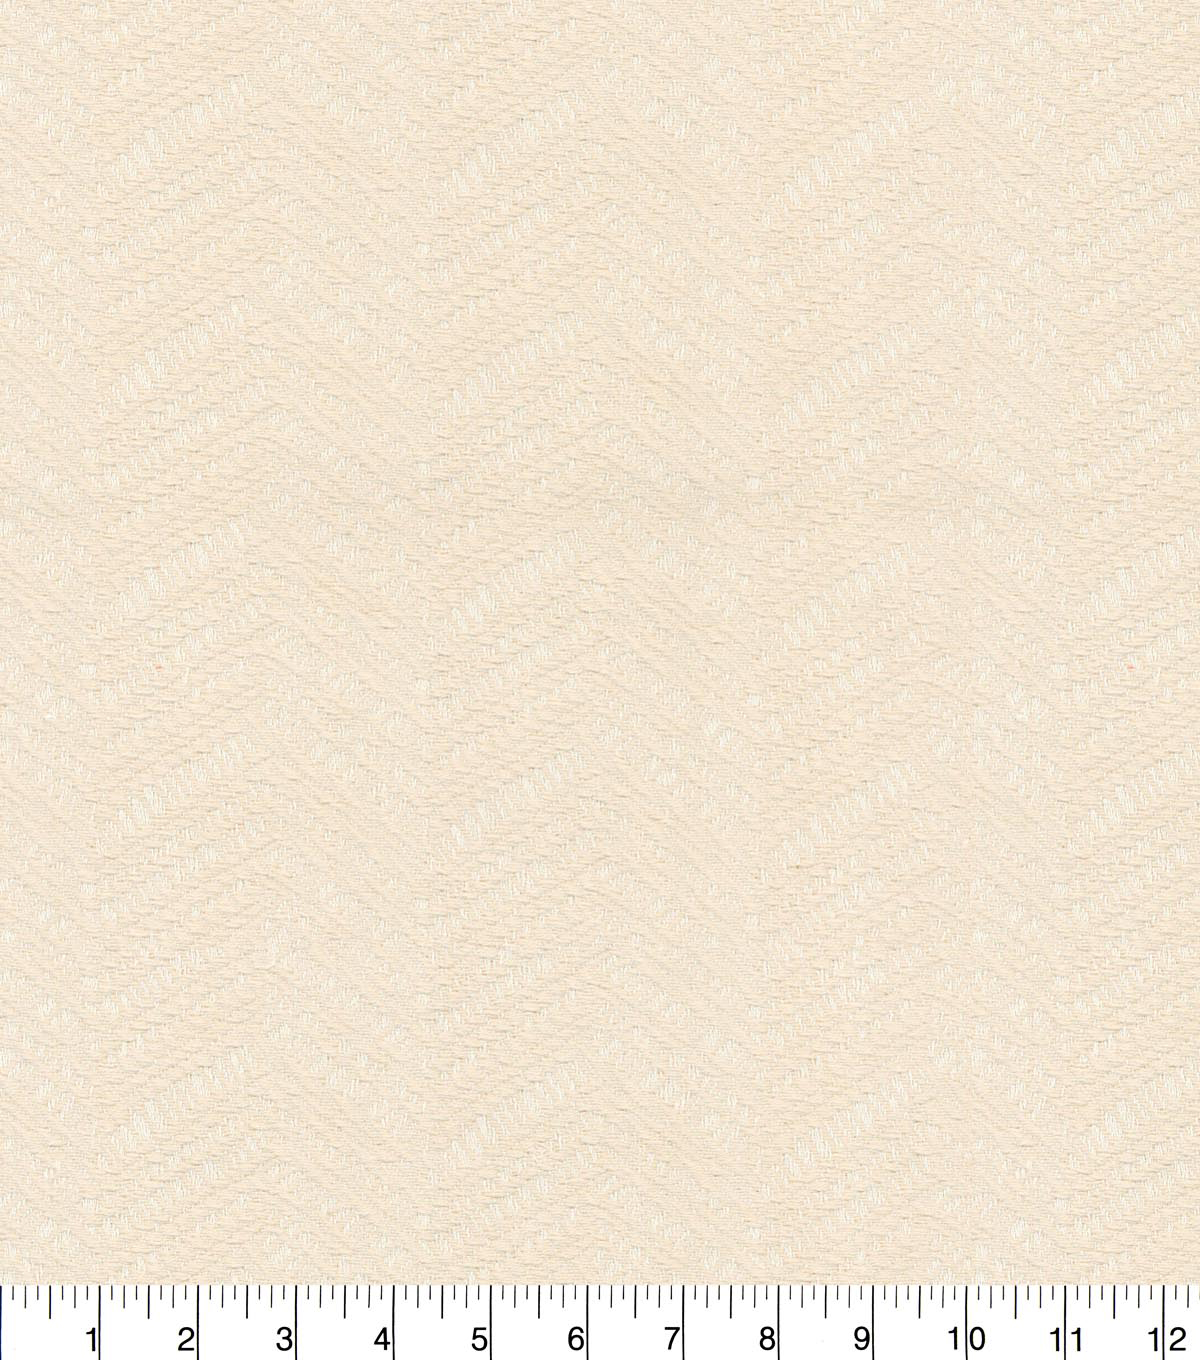 Home Decor 8\u0022x8\u0022 Fabric Swatch-Tommy Bahama Beach Way La Playa